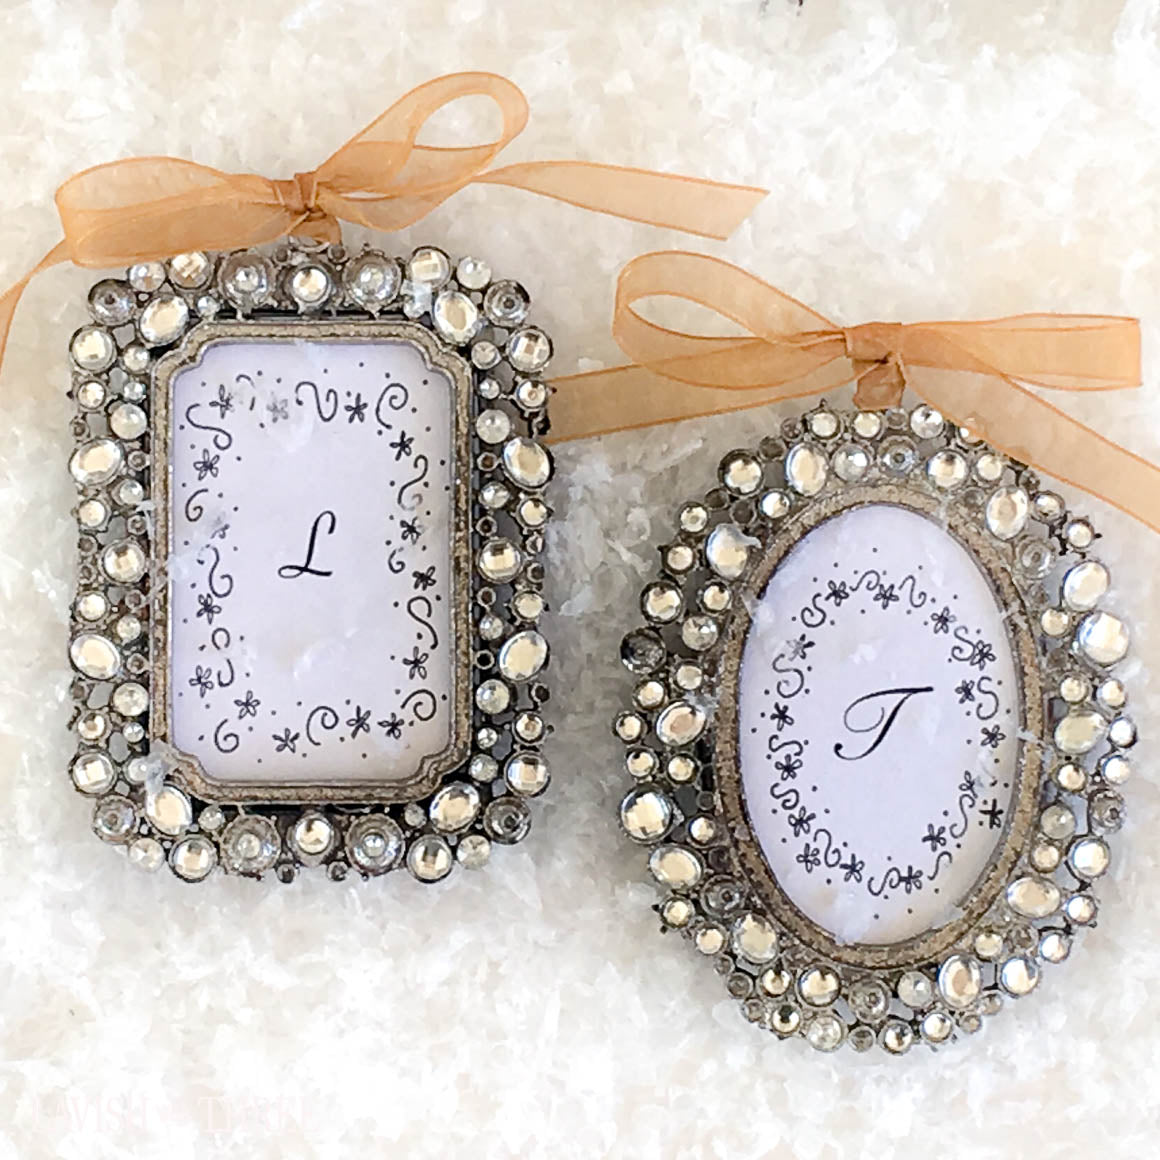 Jeweled pewter frames embellished with crystals hangs by gold ribbon ...